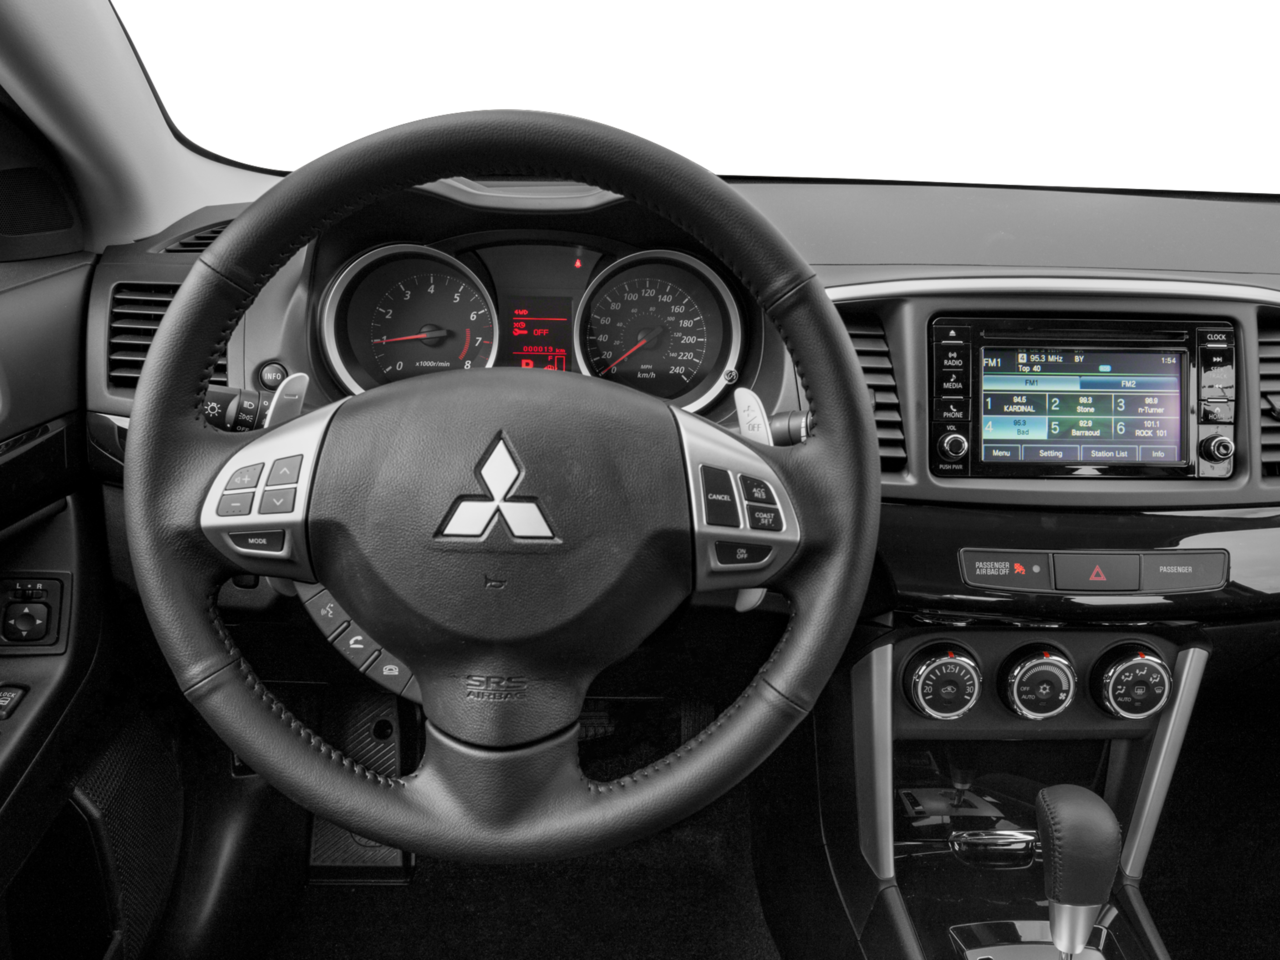 2017 Mitsubishi Lancer Interior   Dashboard And Steering Wheel